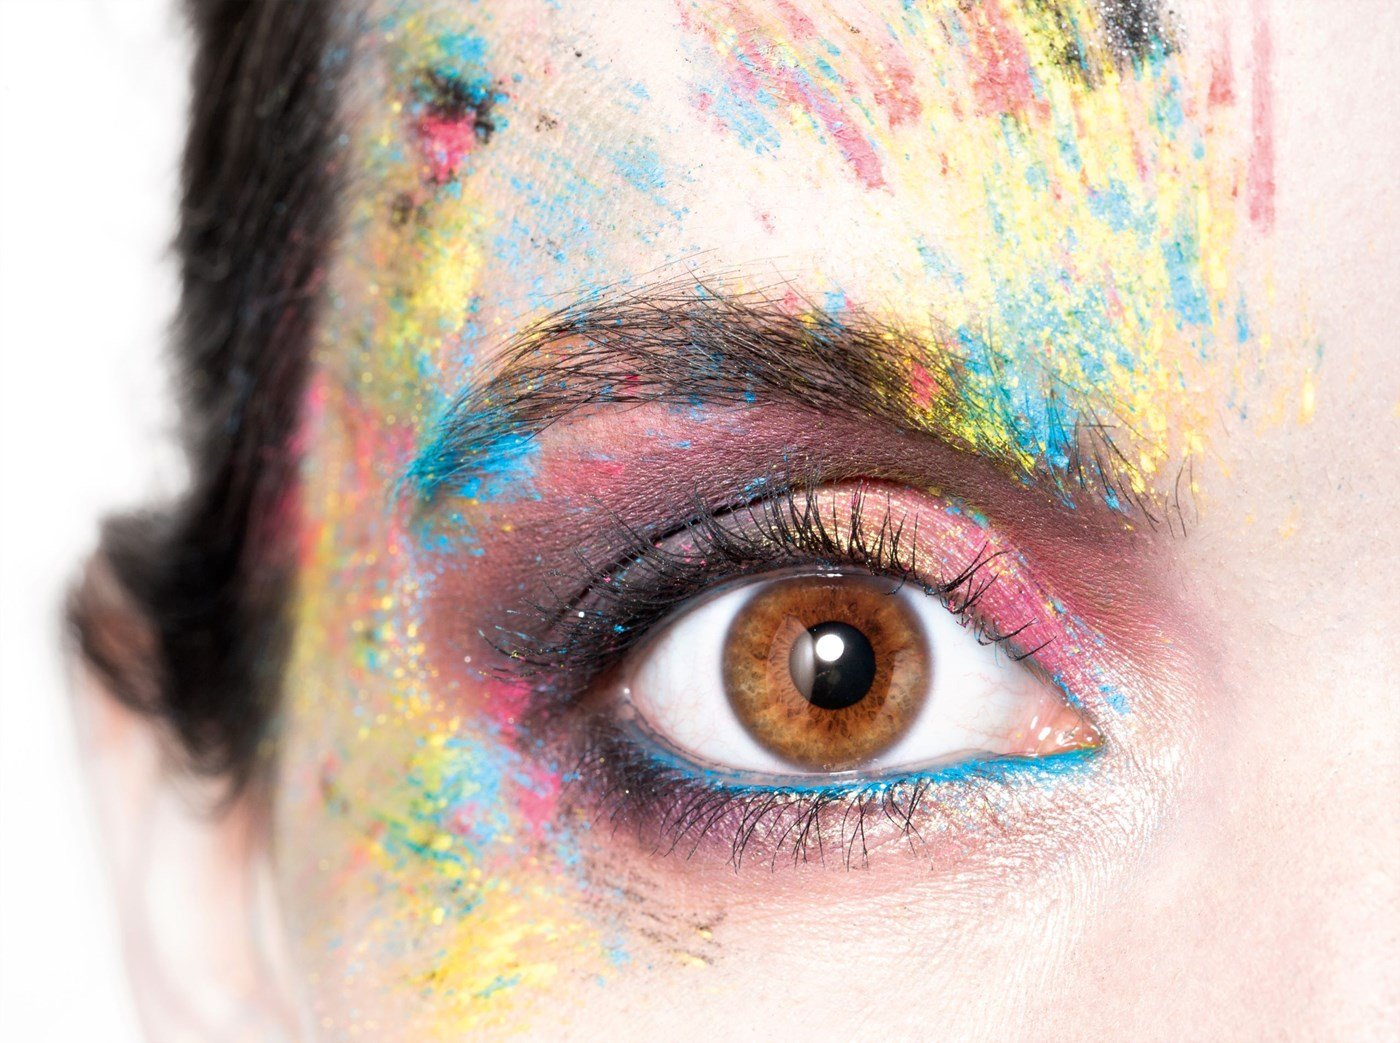 Up close shot of female eye ball with paint splattered over face